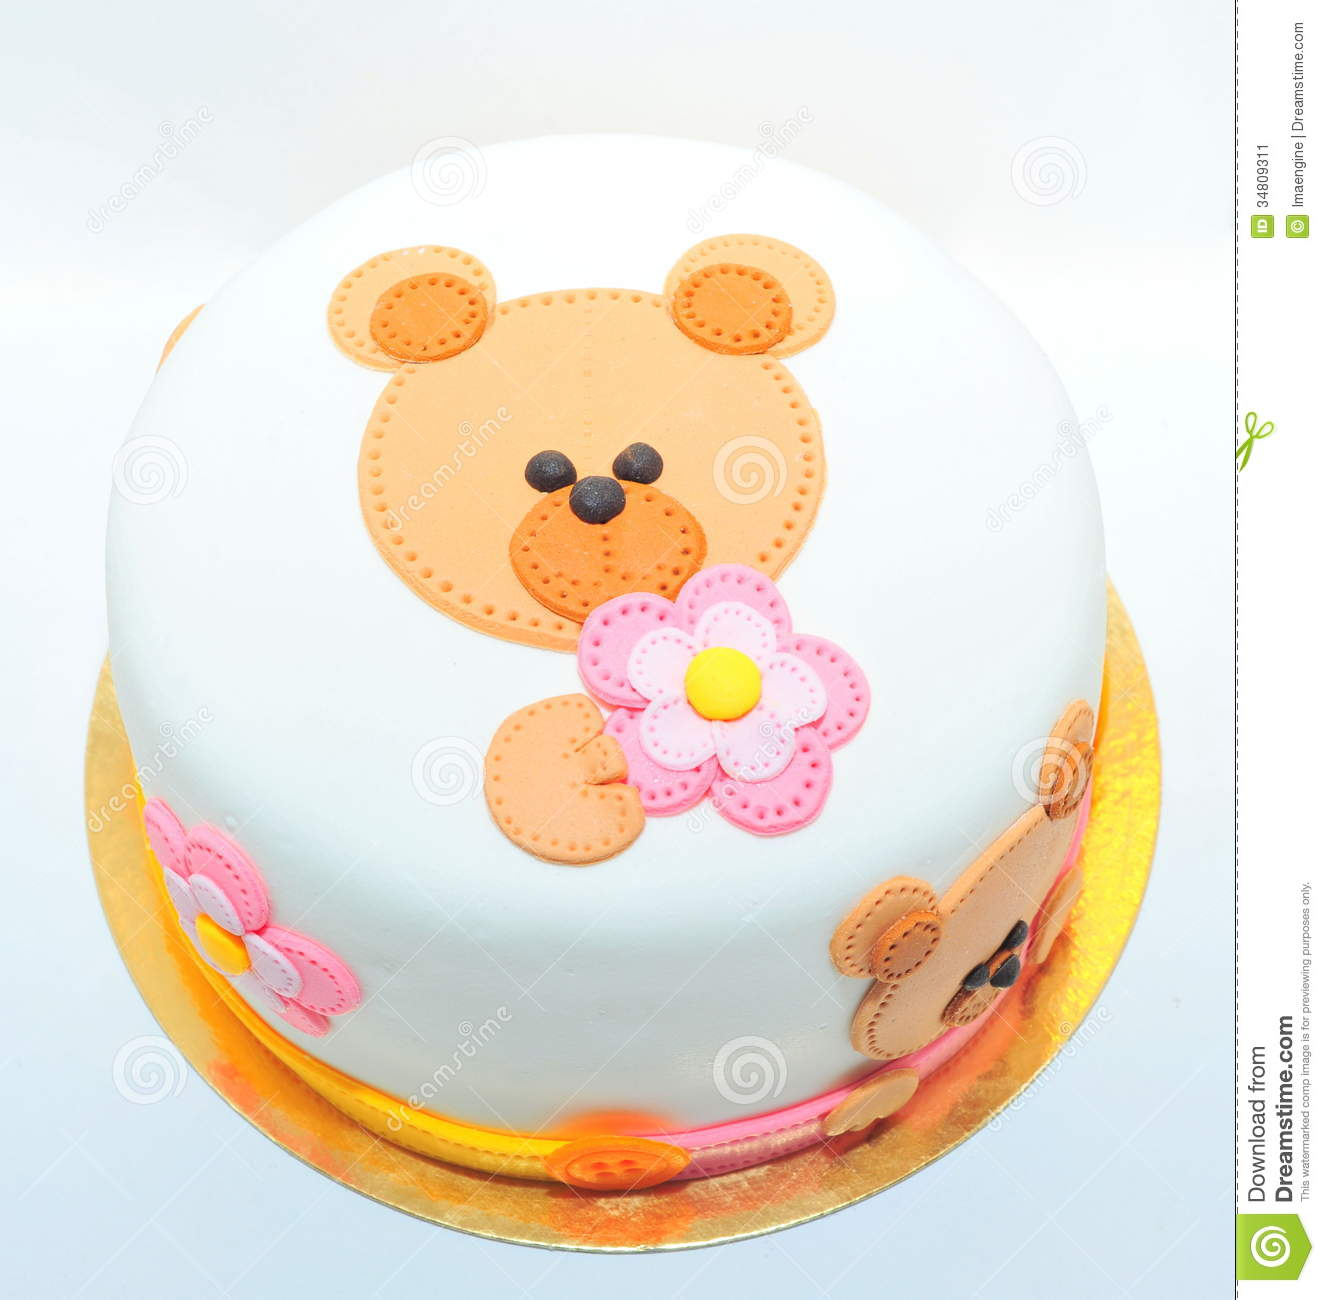 Girls Birthday Cake With A Fondant Teddy Bear Stock Image - Image ...